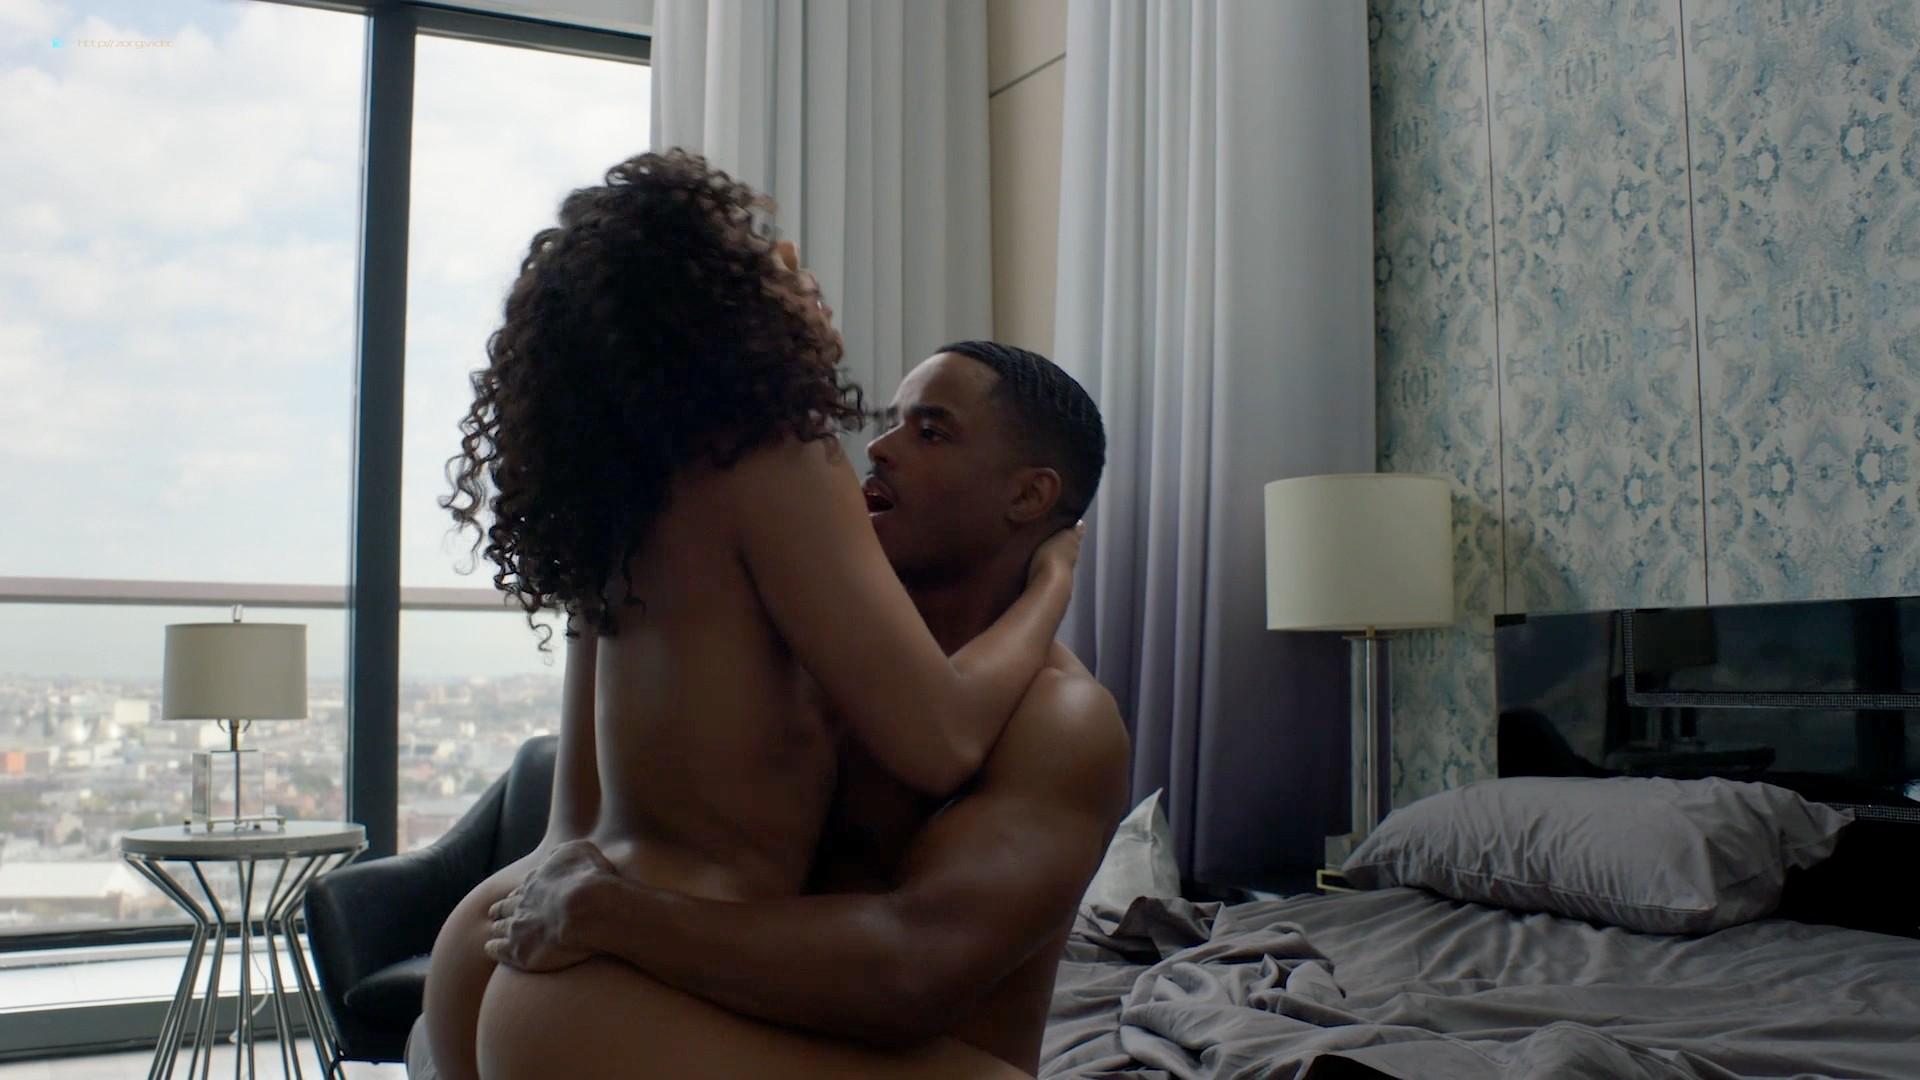 Candace Maxwell nude hot sex doggy style - Power (2019) s6e3 HD 1080p Web (7)